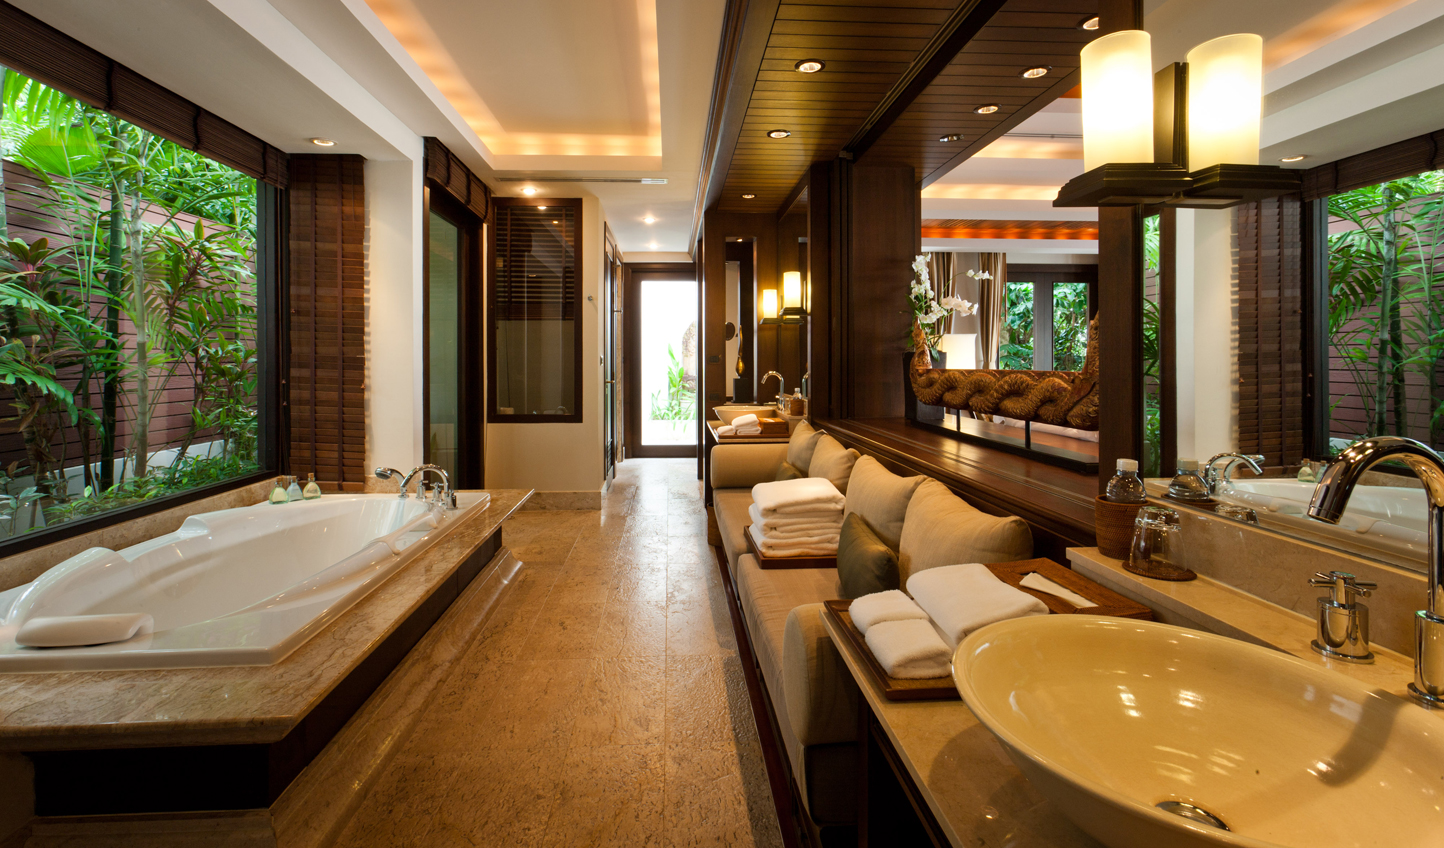 Decadent bathrooms with sumptuous bathtubs and outdoor showers